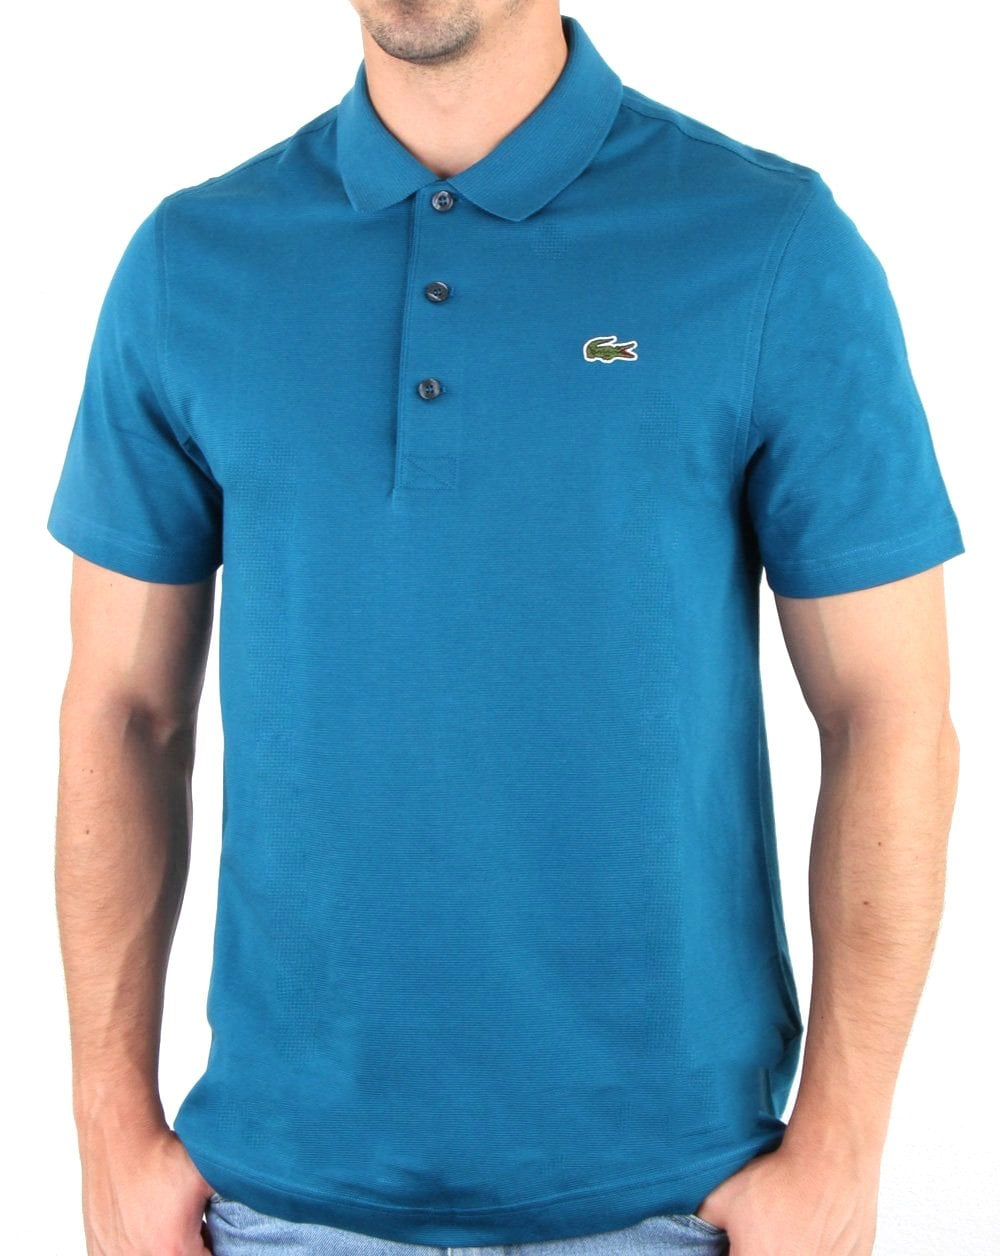 Lacoste Polo Shirt Bright Blue